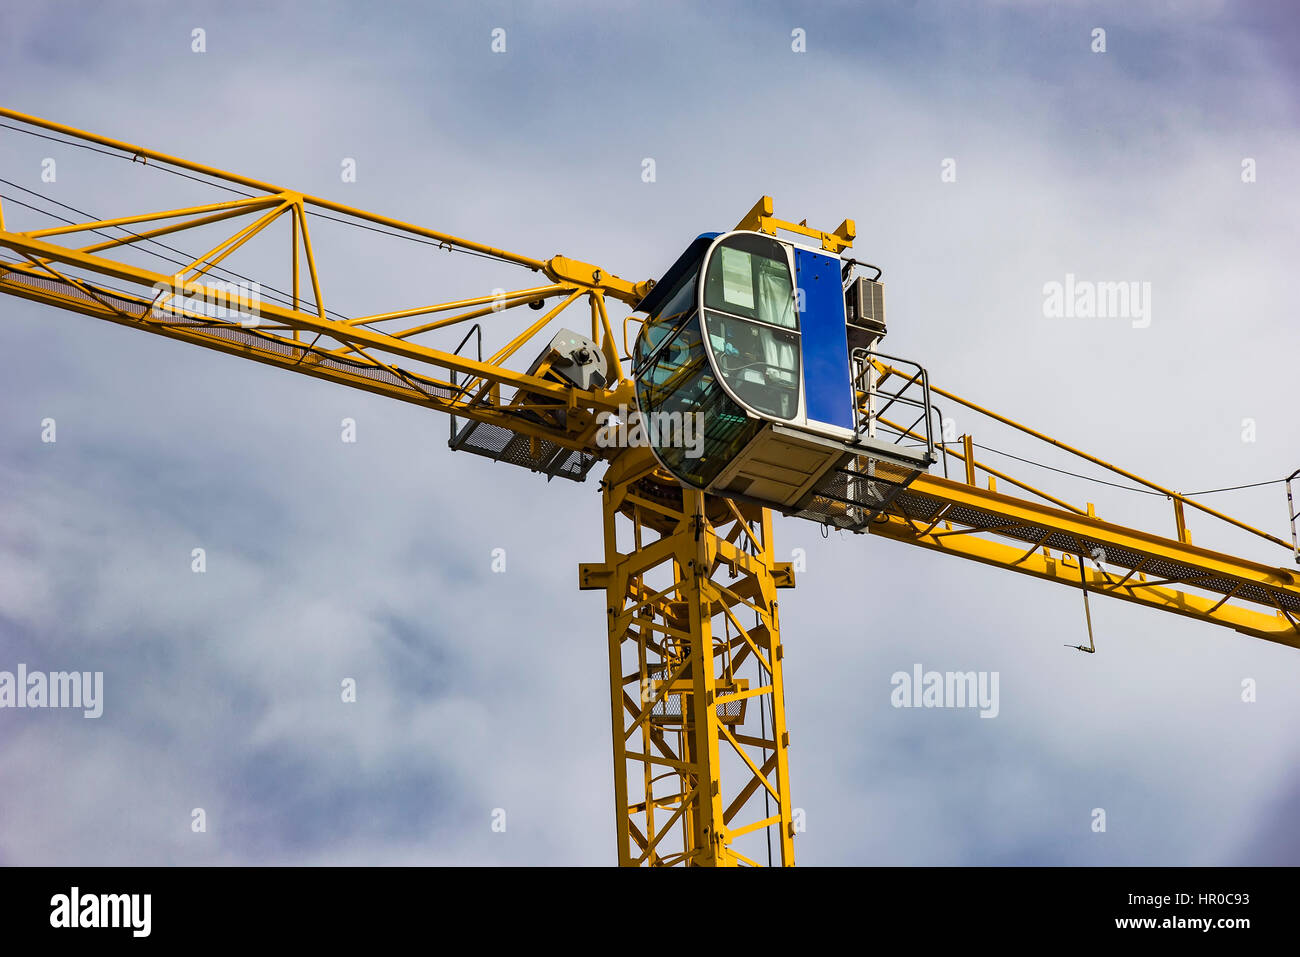 construction tower crane cabin closeup on blue sky with clouds